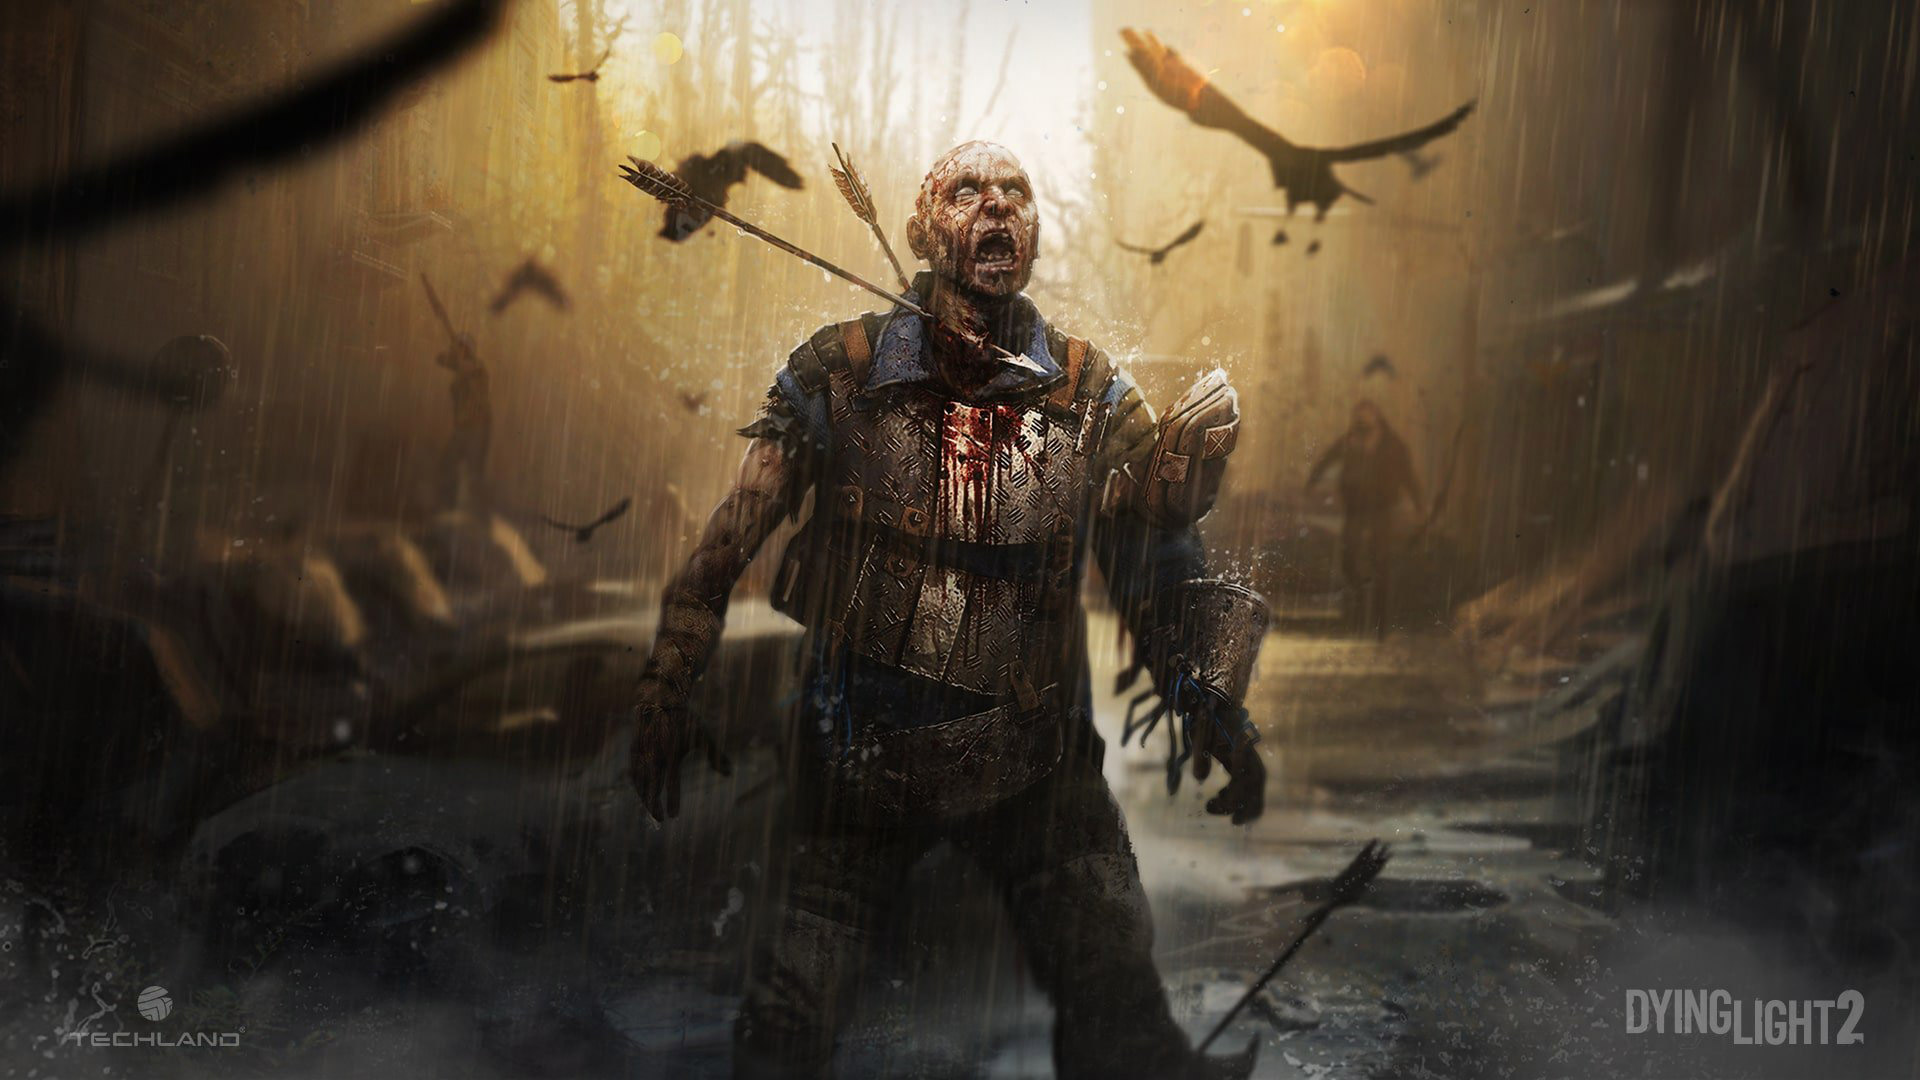 Dying Light 2 Zombies 354615 Hd Wallpaper Backgrounds Download